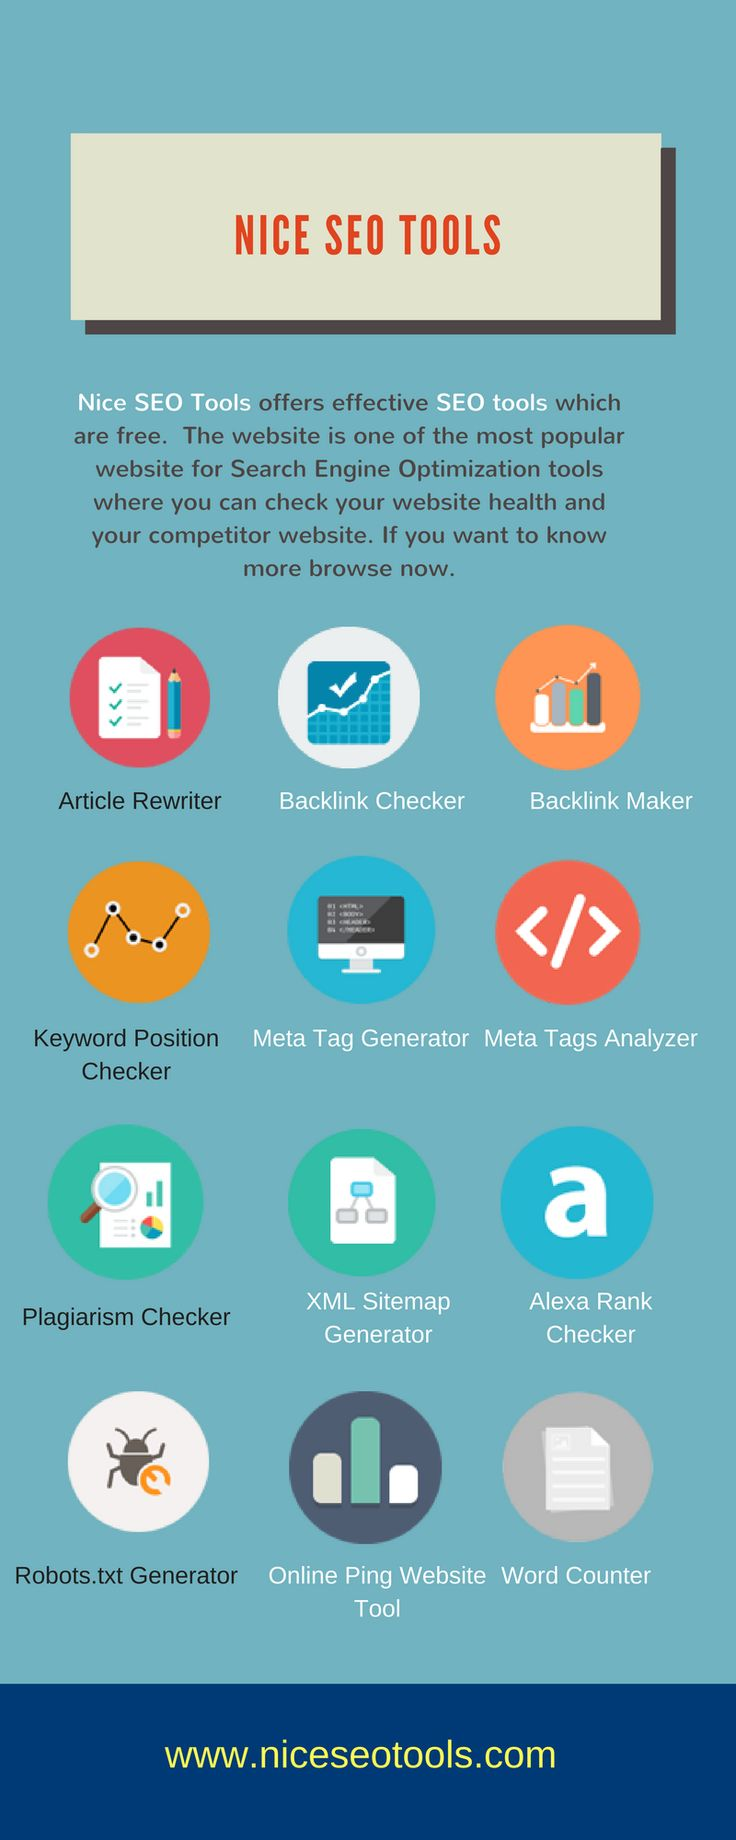 If you are looking for perfect website analyzer tools, then look no further for your need and browse now www.niceseotools.com.  Nice SEO Tools is offering free SEO tools like Backlink Maker, Meta Tag Generator, Article Rewriter, Plagiarism Checker, Keyword Position Checker, Robots.txt Generator, XML Sitemap Generator and other more.